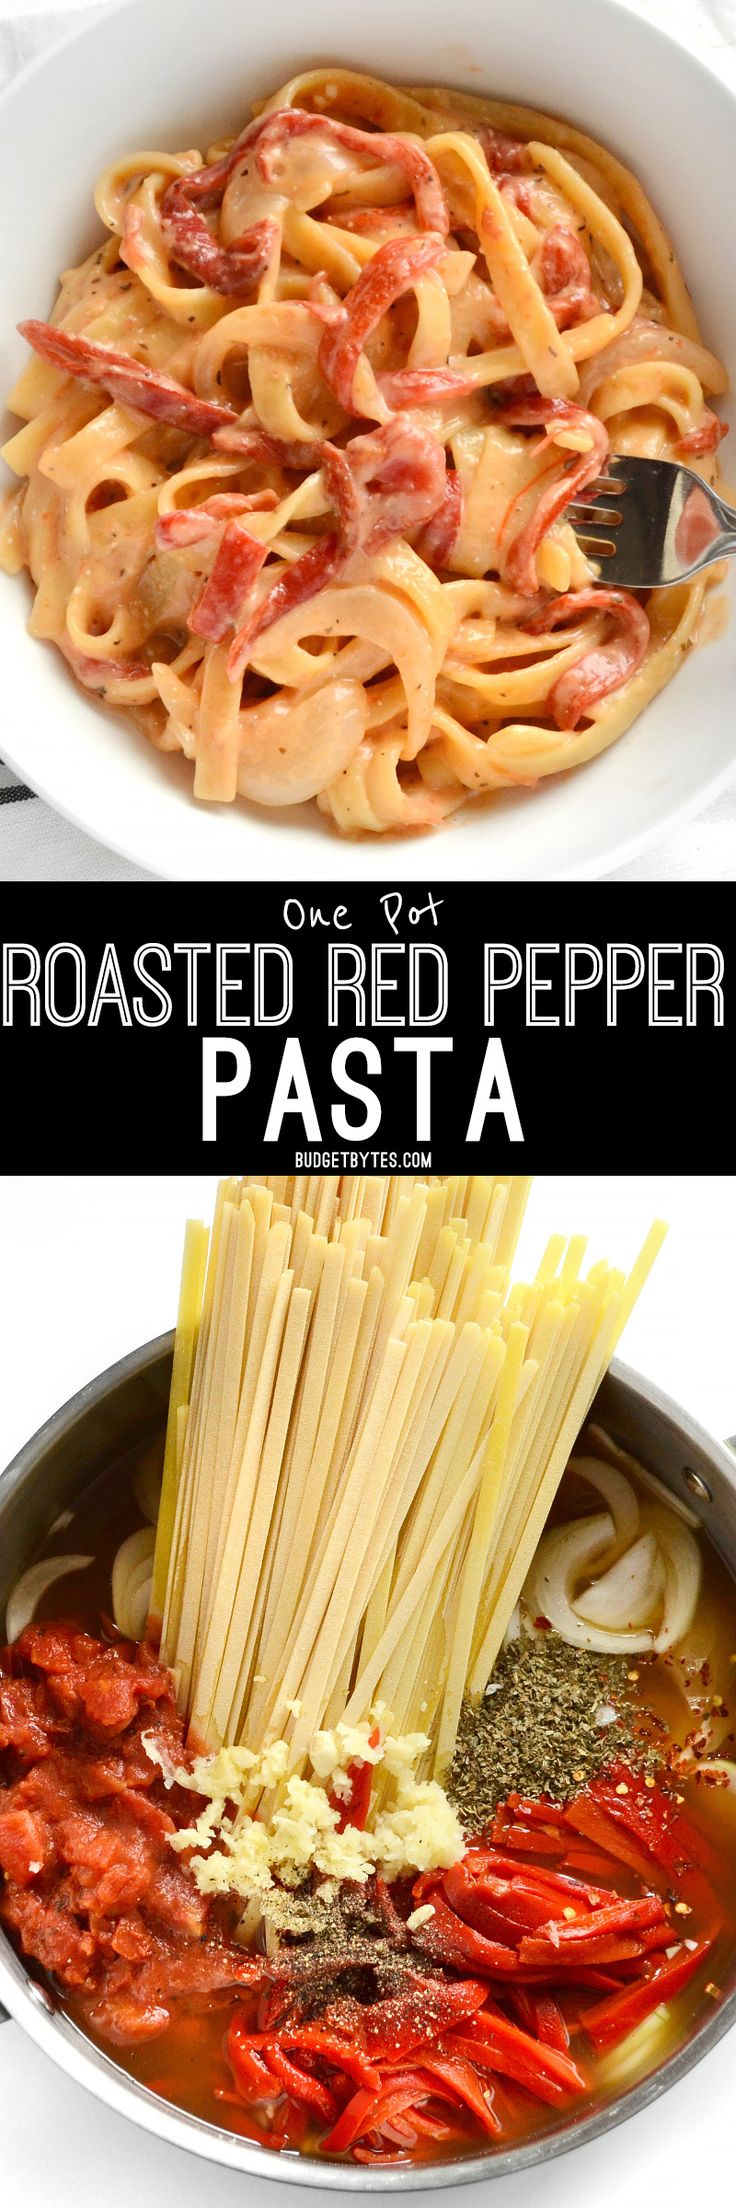 This smoky, sweet, and creamy One Pot Roasted Red Pepper Pasta cooks in one single pot and can be on the table in about 30 minutes. BudgetBytes.com